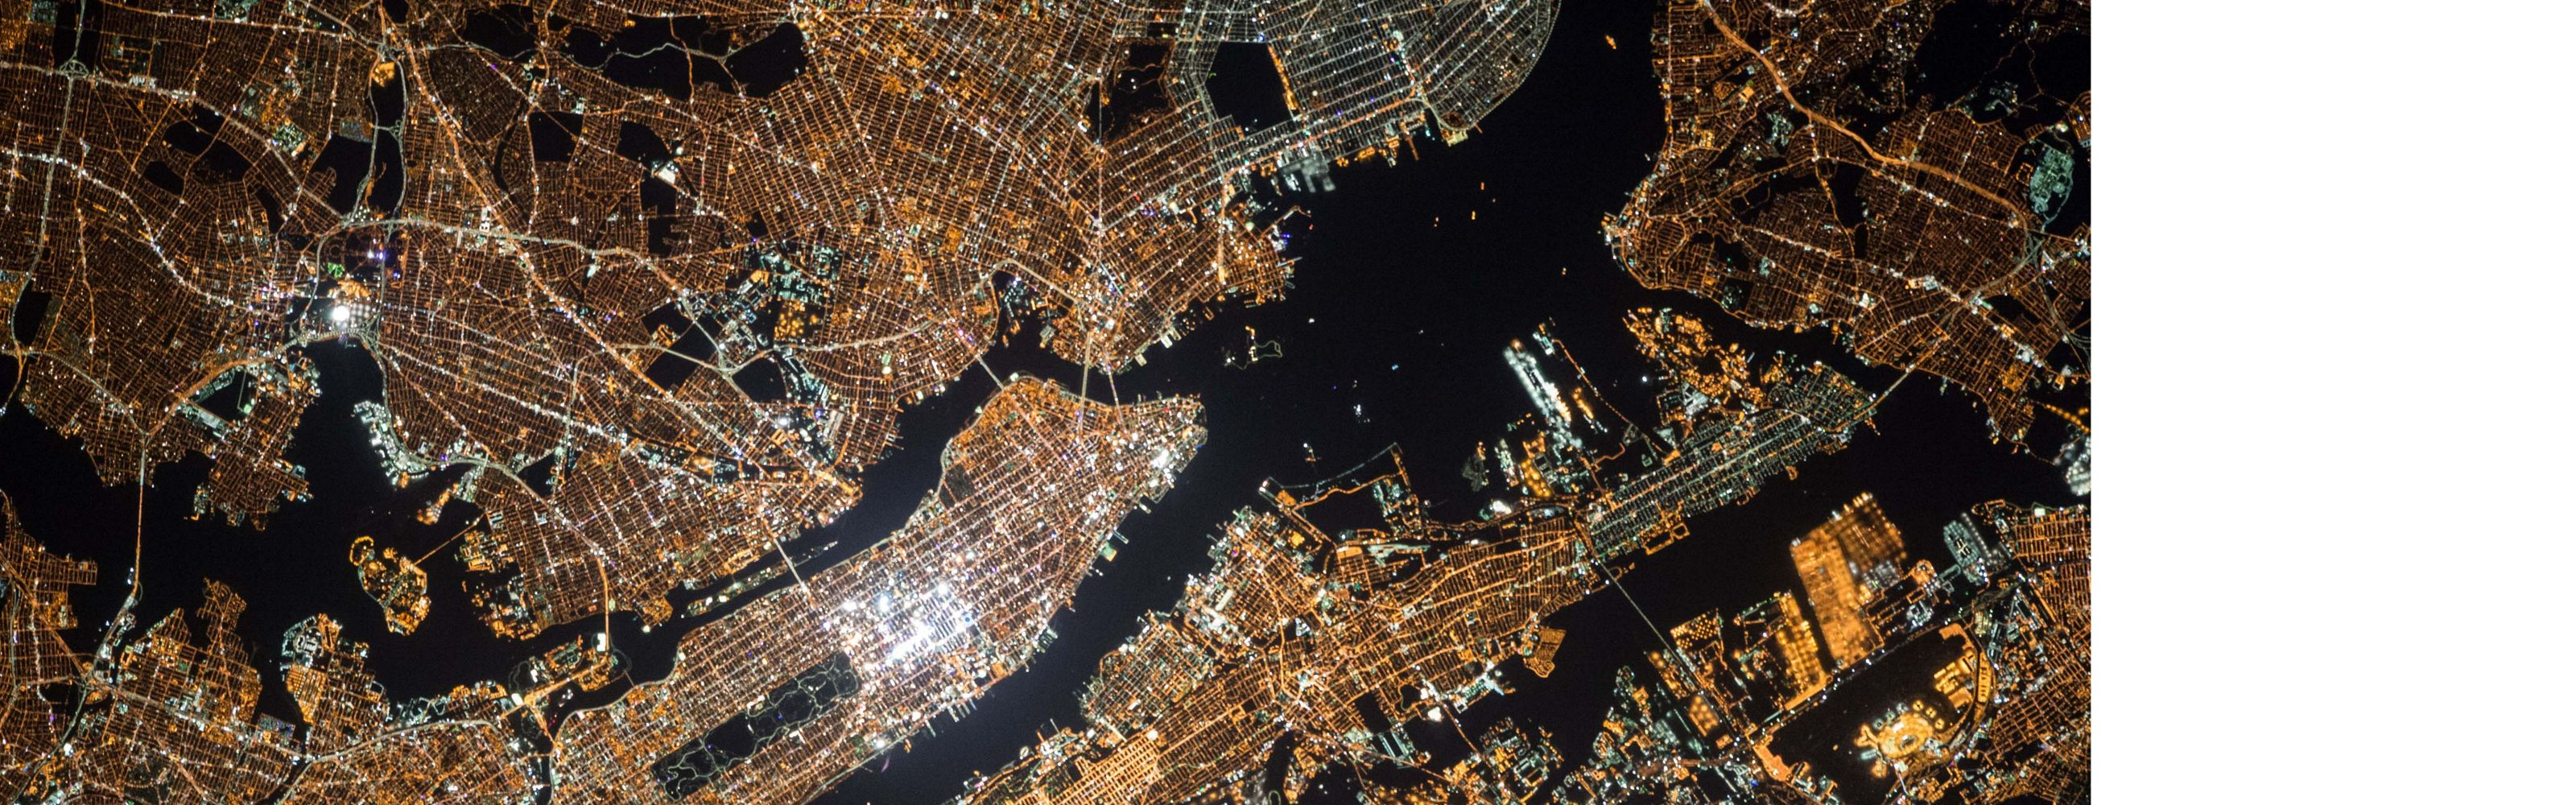 Aerial view of a city grid at night.